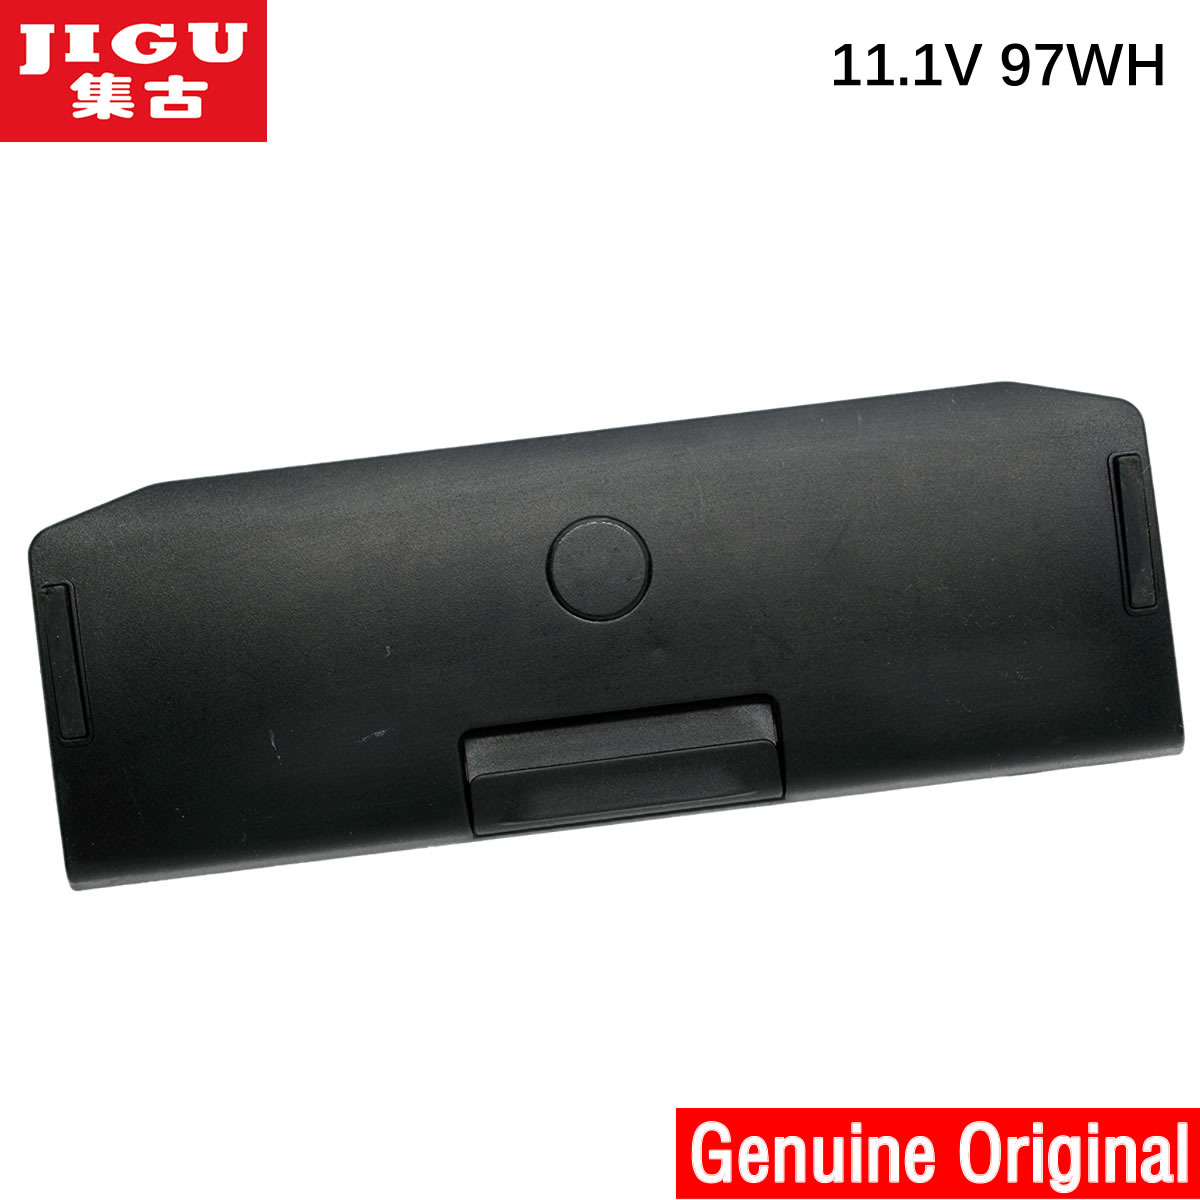 JIGU CWVXW Original laptop Battery For DELL For Latitude E6430 ATG E5440 E6320 E6540 E6440 for Precision M4800 M6800 11 1v 97wh korea cell new m5y0x laptop battery for dell latitude e6420 e6520 e5420 e5520 e6430 71r31 nhxvw t54fj 9cell